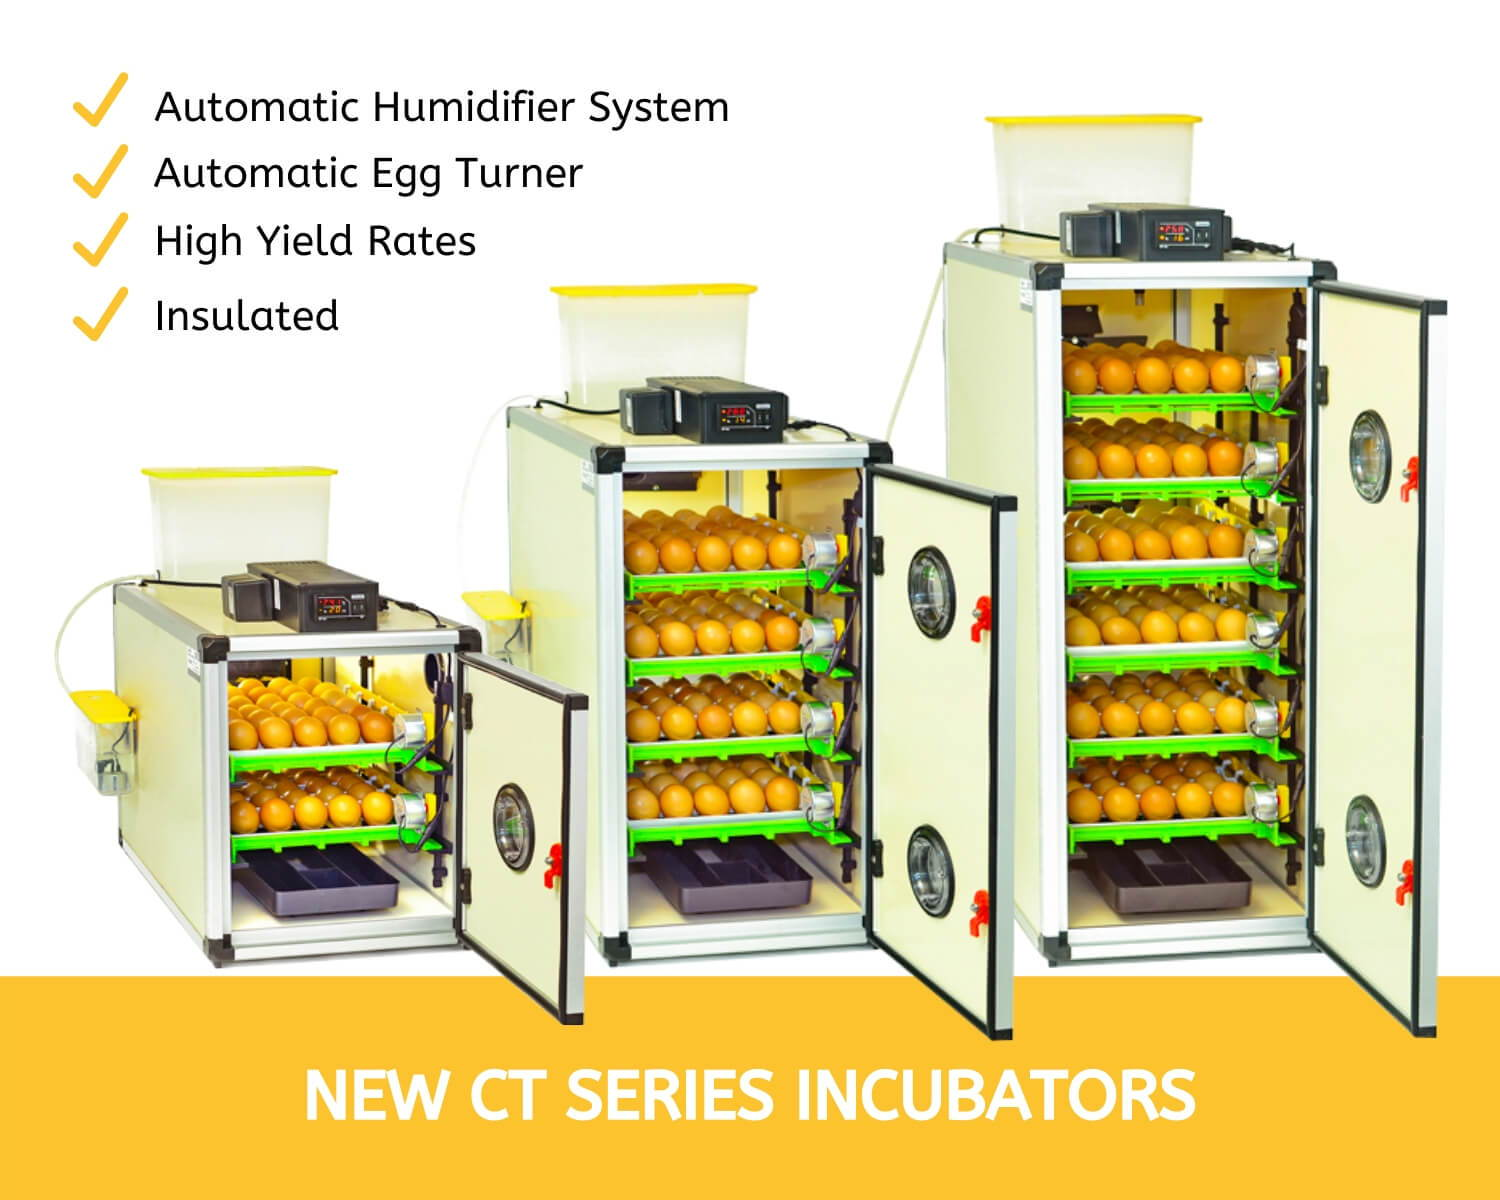 CT60, CT120, CT180 Incubators - Cimuka Hatching Time